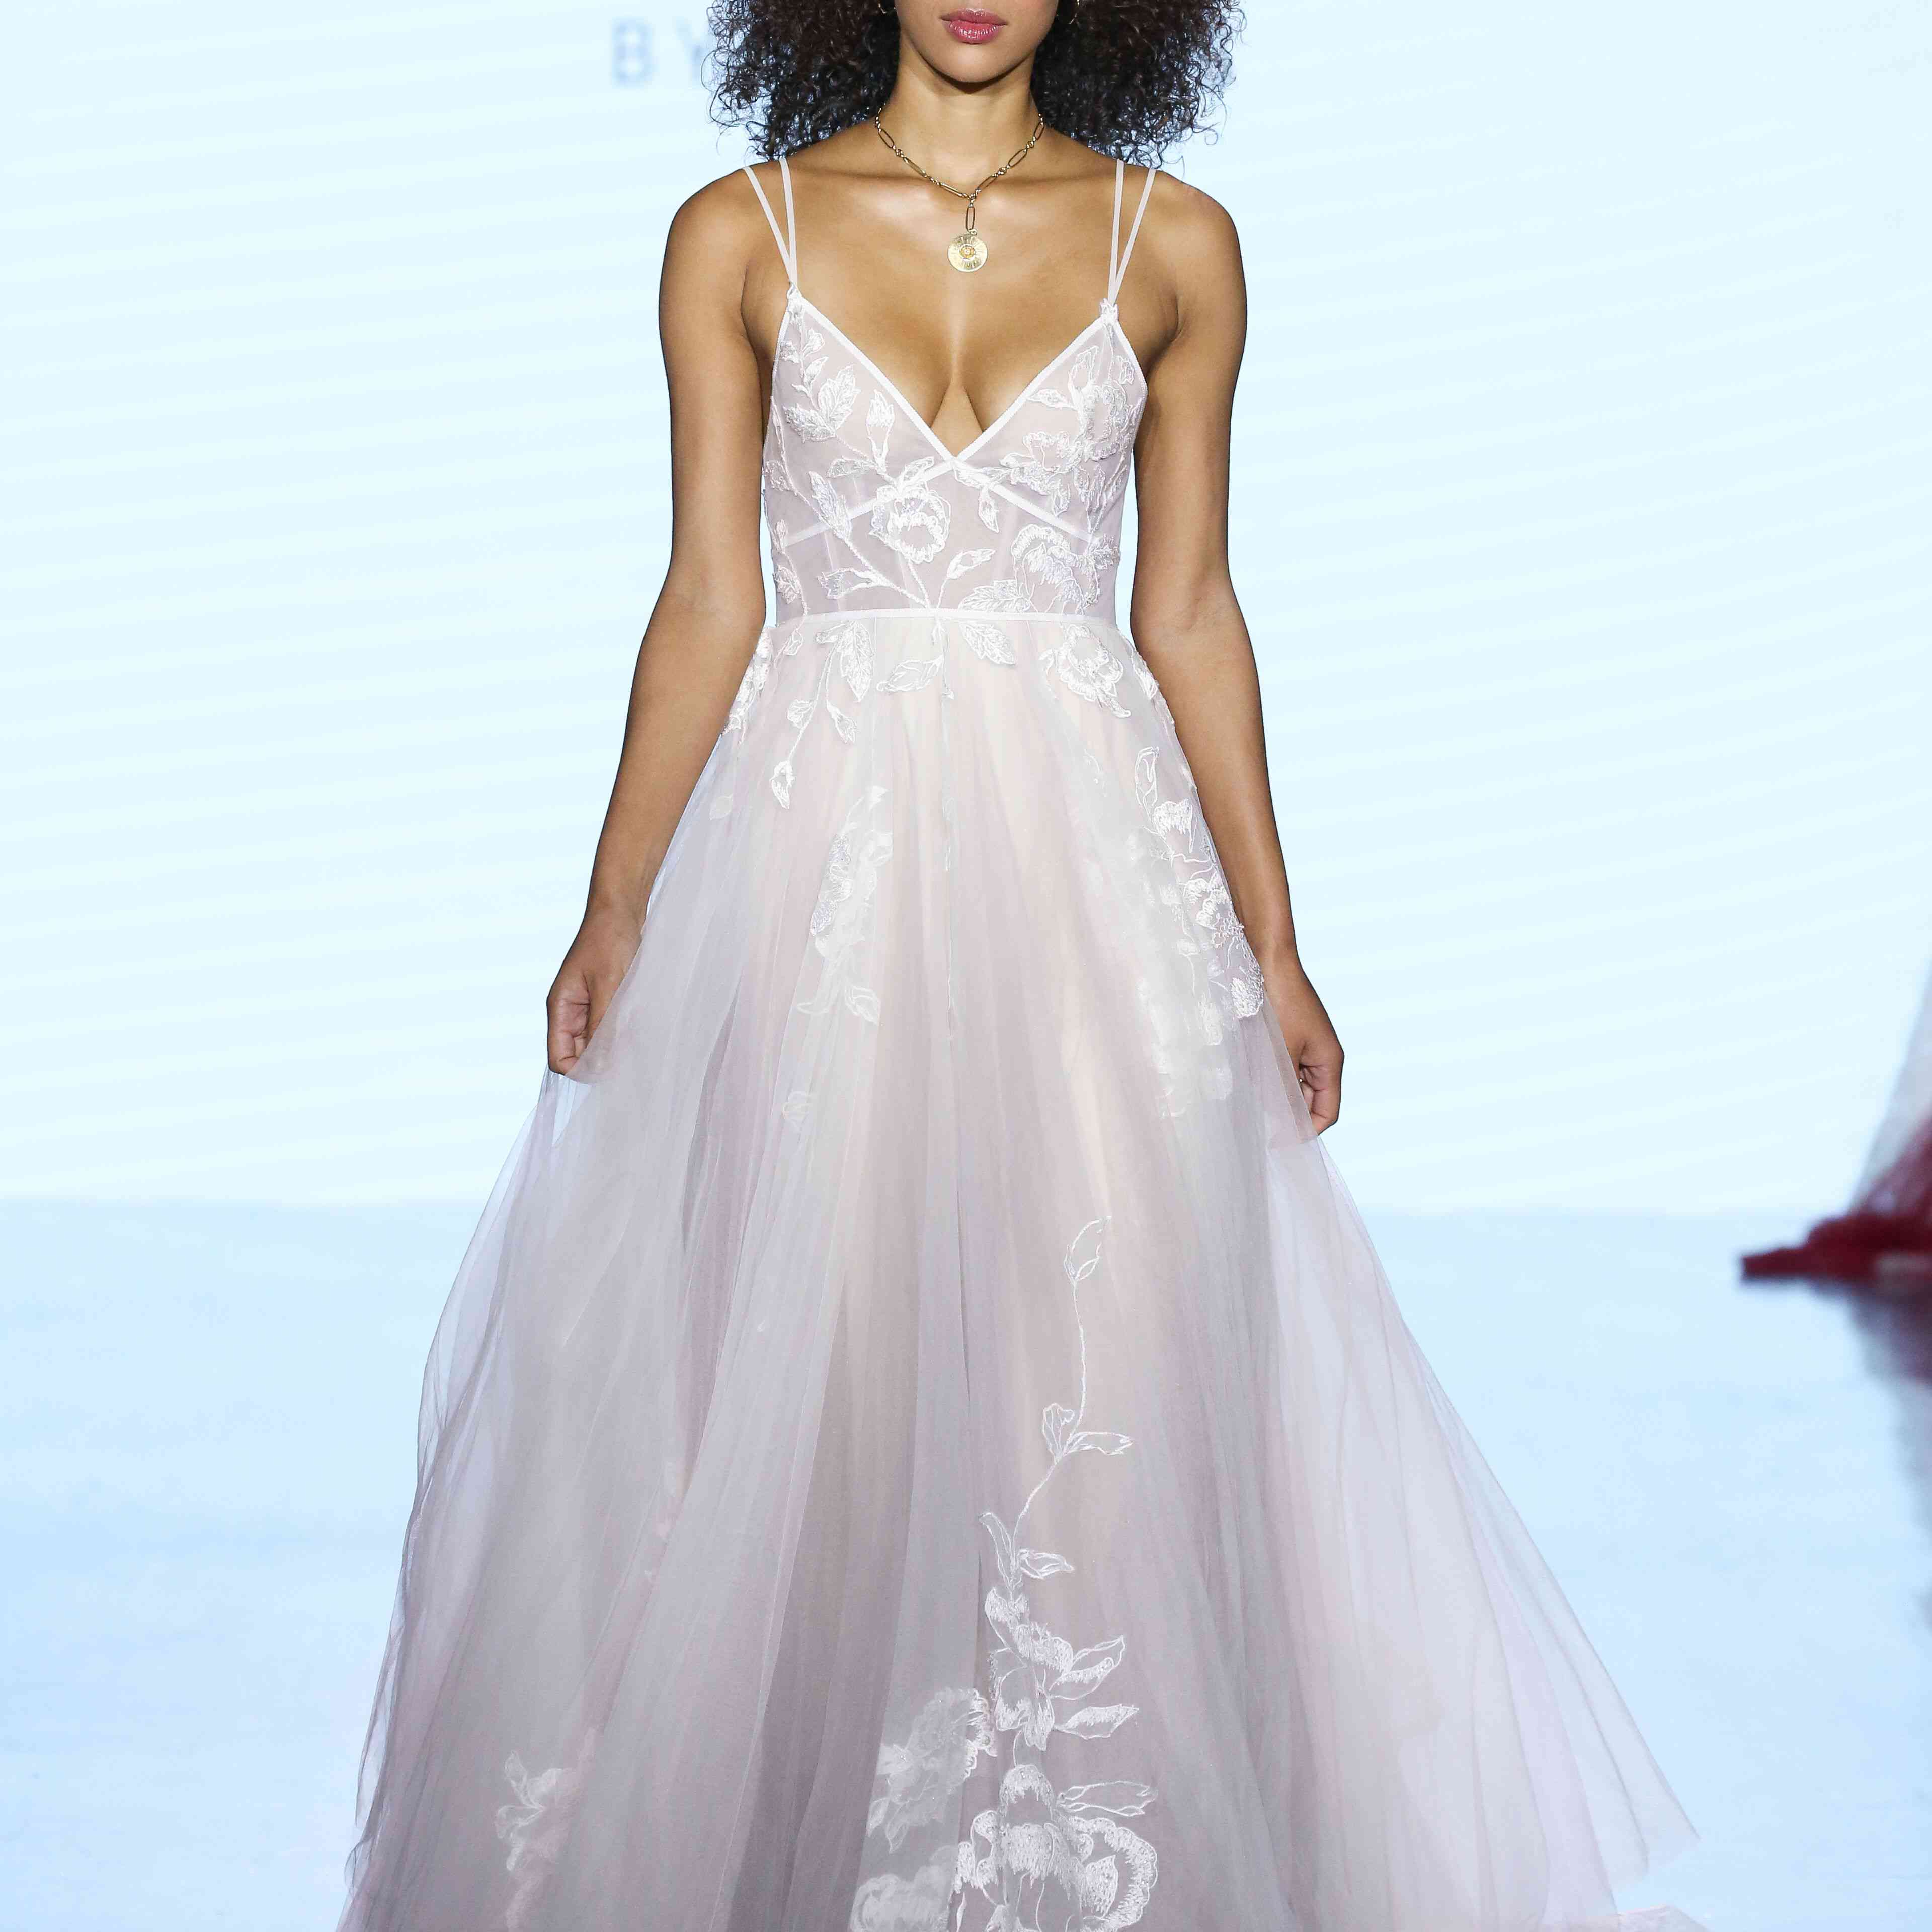 Model in tulle wedding dress with floral lace embroidery, V-neckline, and double spaghetti straps